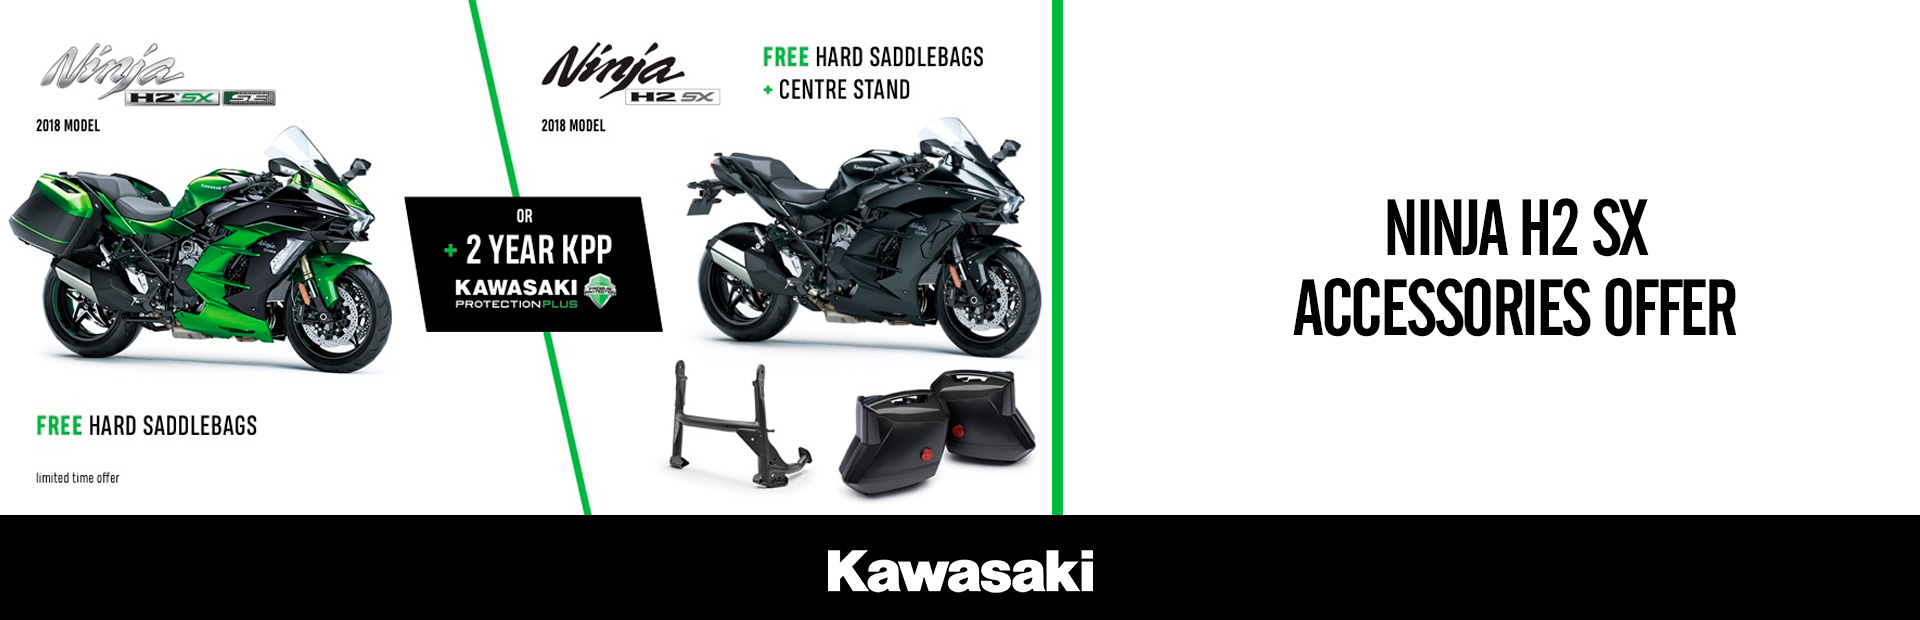 Kawasaki: NINJA H2 SX ACCESSORIES OFFER